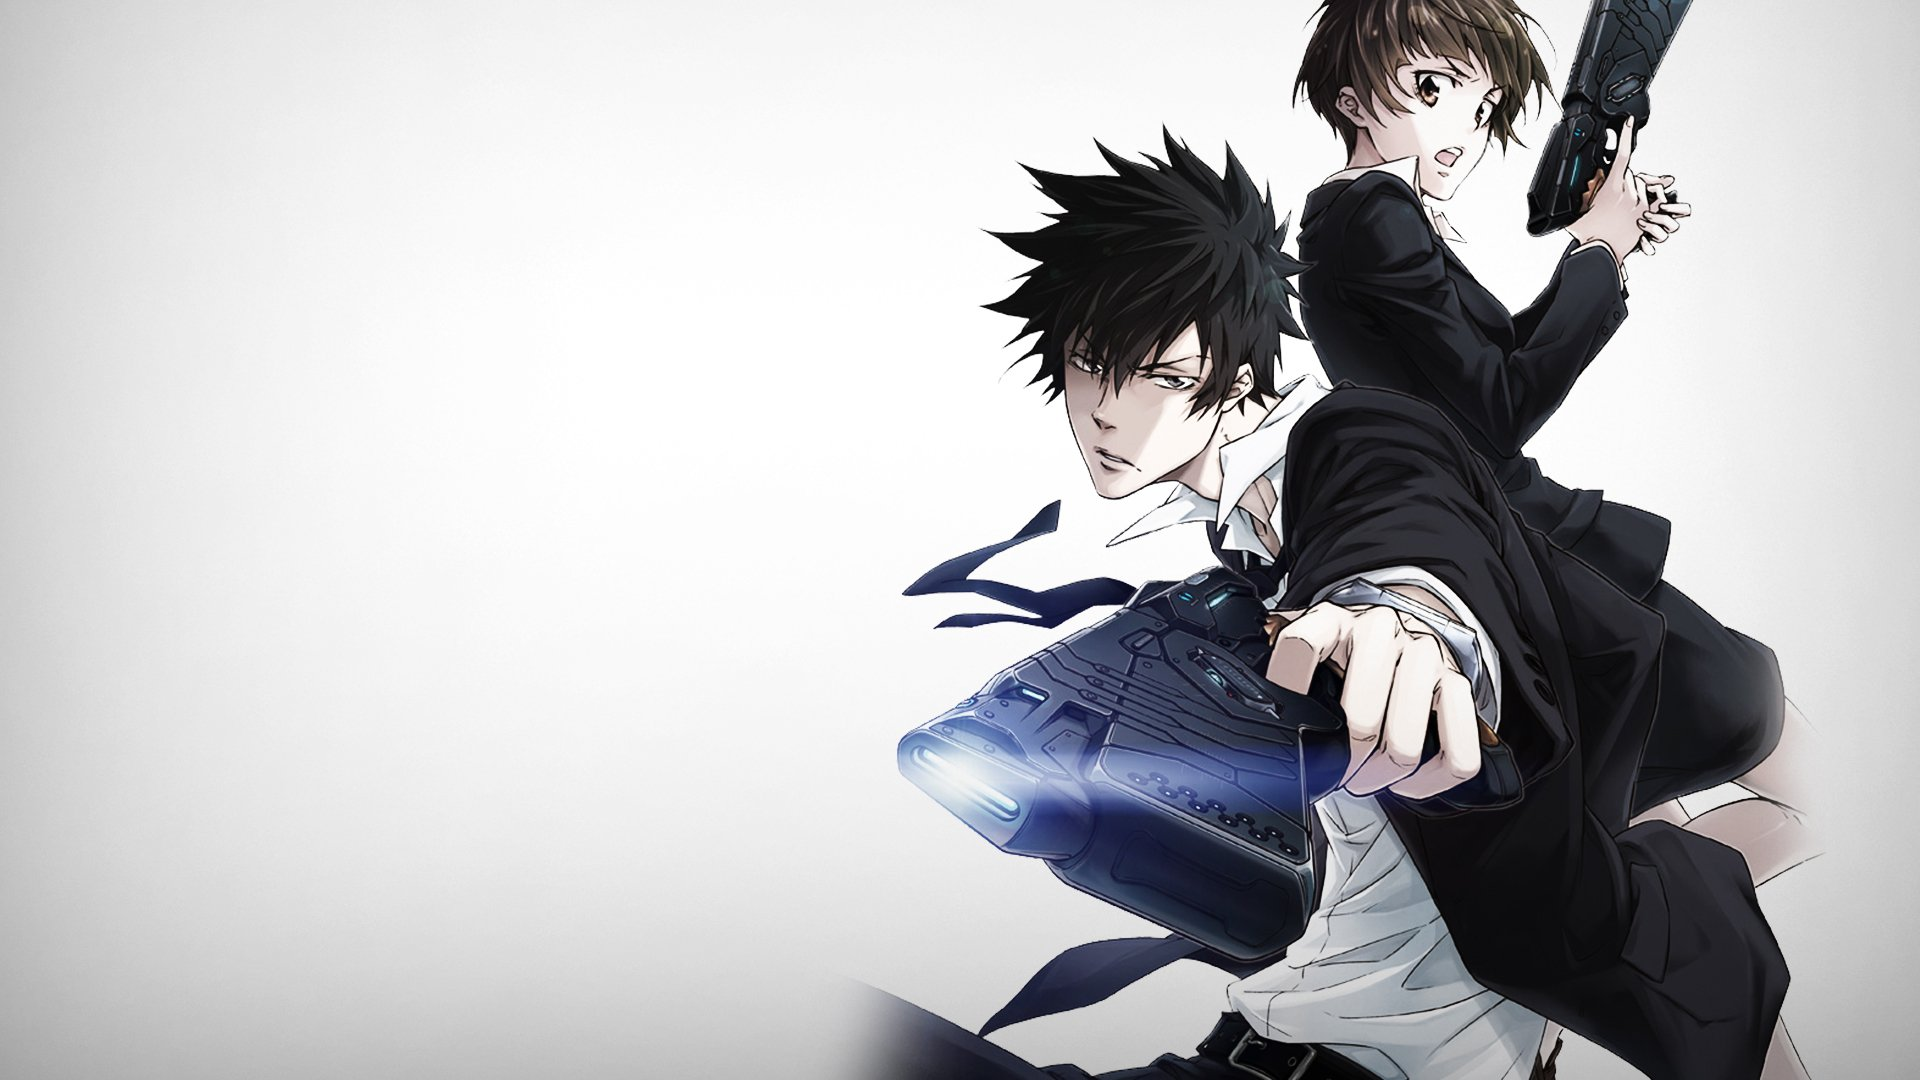 Psycho Pass Wallpaper HD - WallpaperSafari